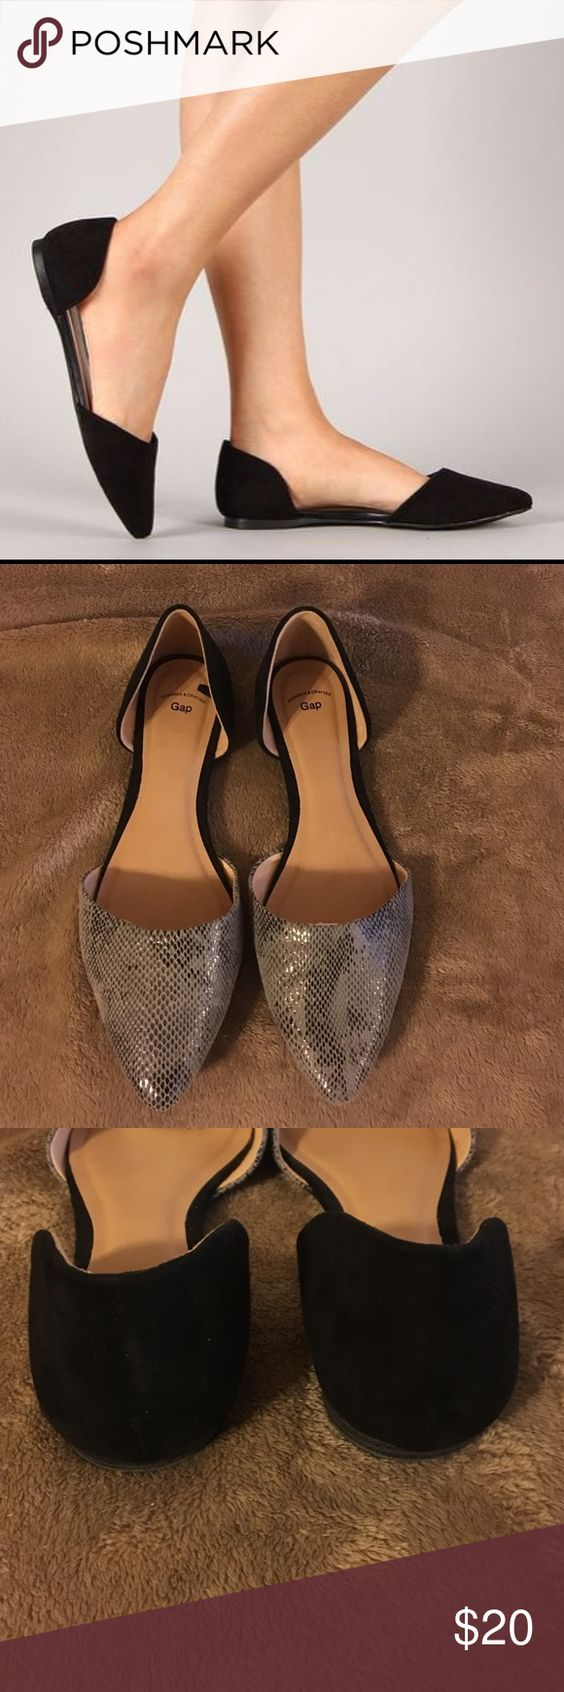 🎁Gap D orsay flat Cute flats for any outfit, black and snakeskin 🚨price is firm GAP Shoes Flats & Loafers